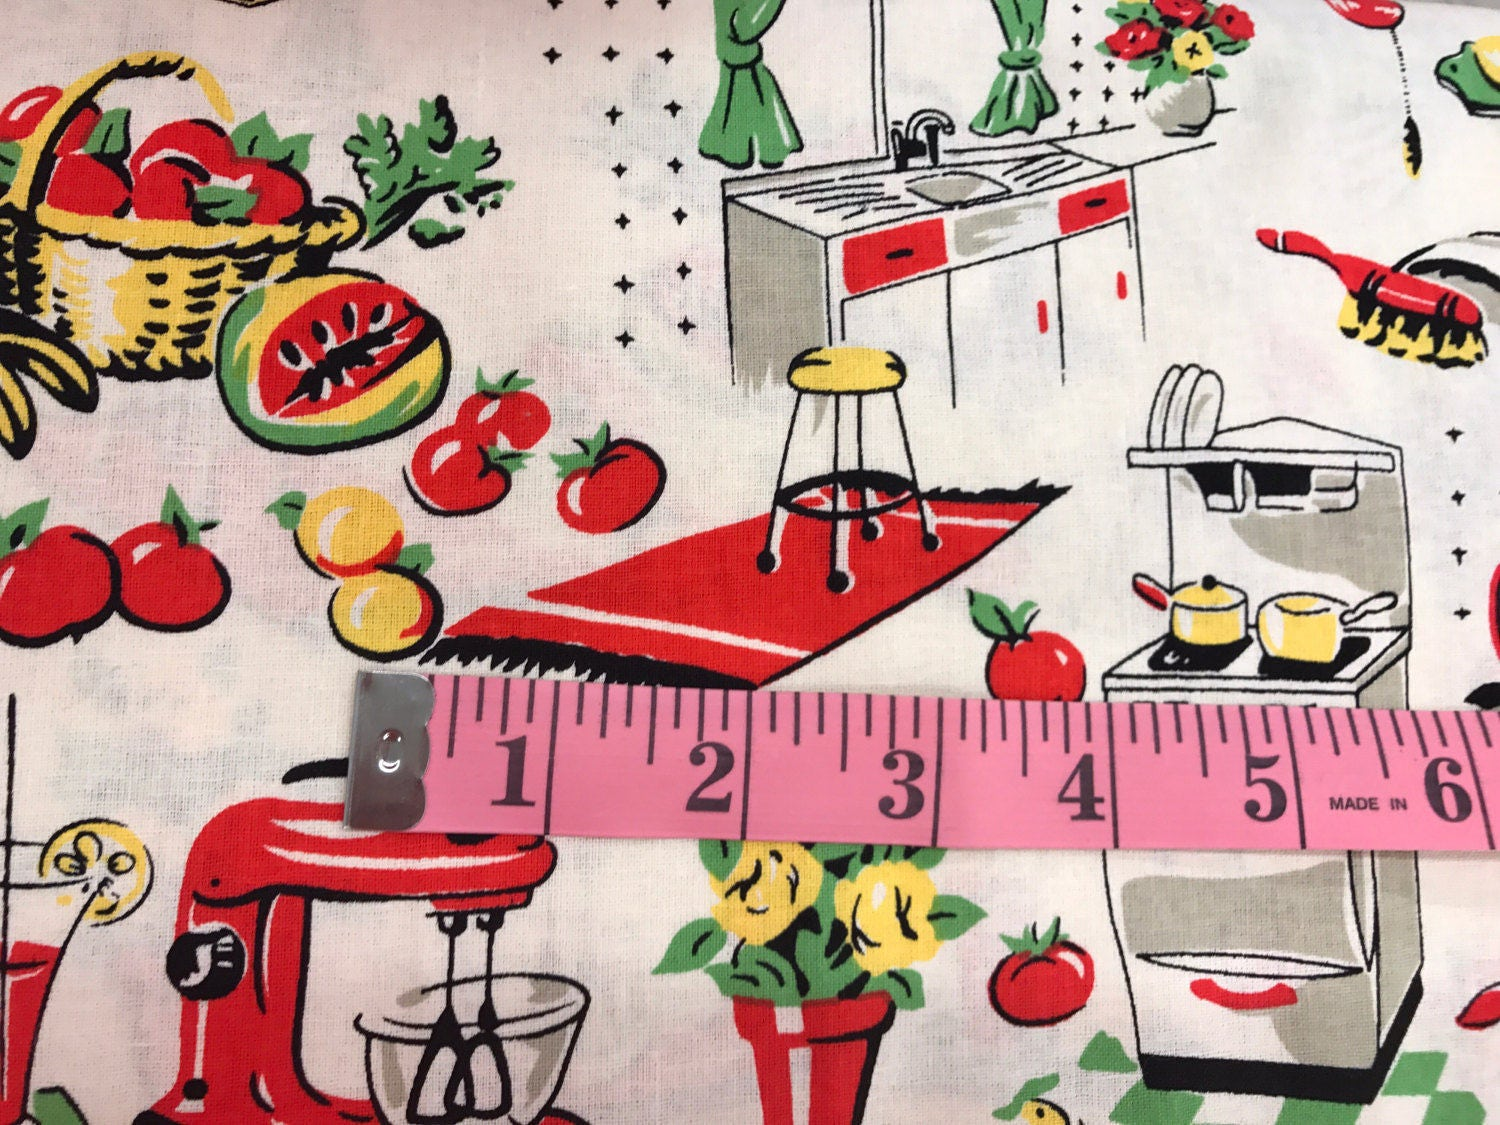 vintage retro style 1950's kitchen fabric lady fabric